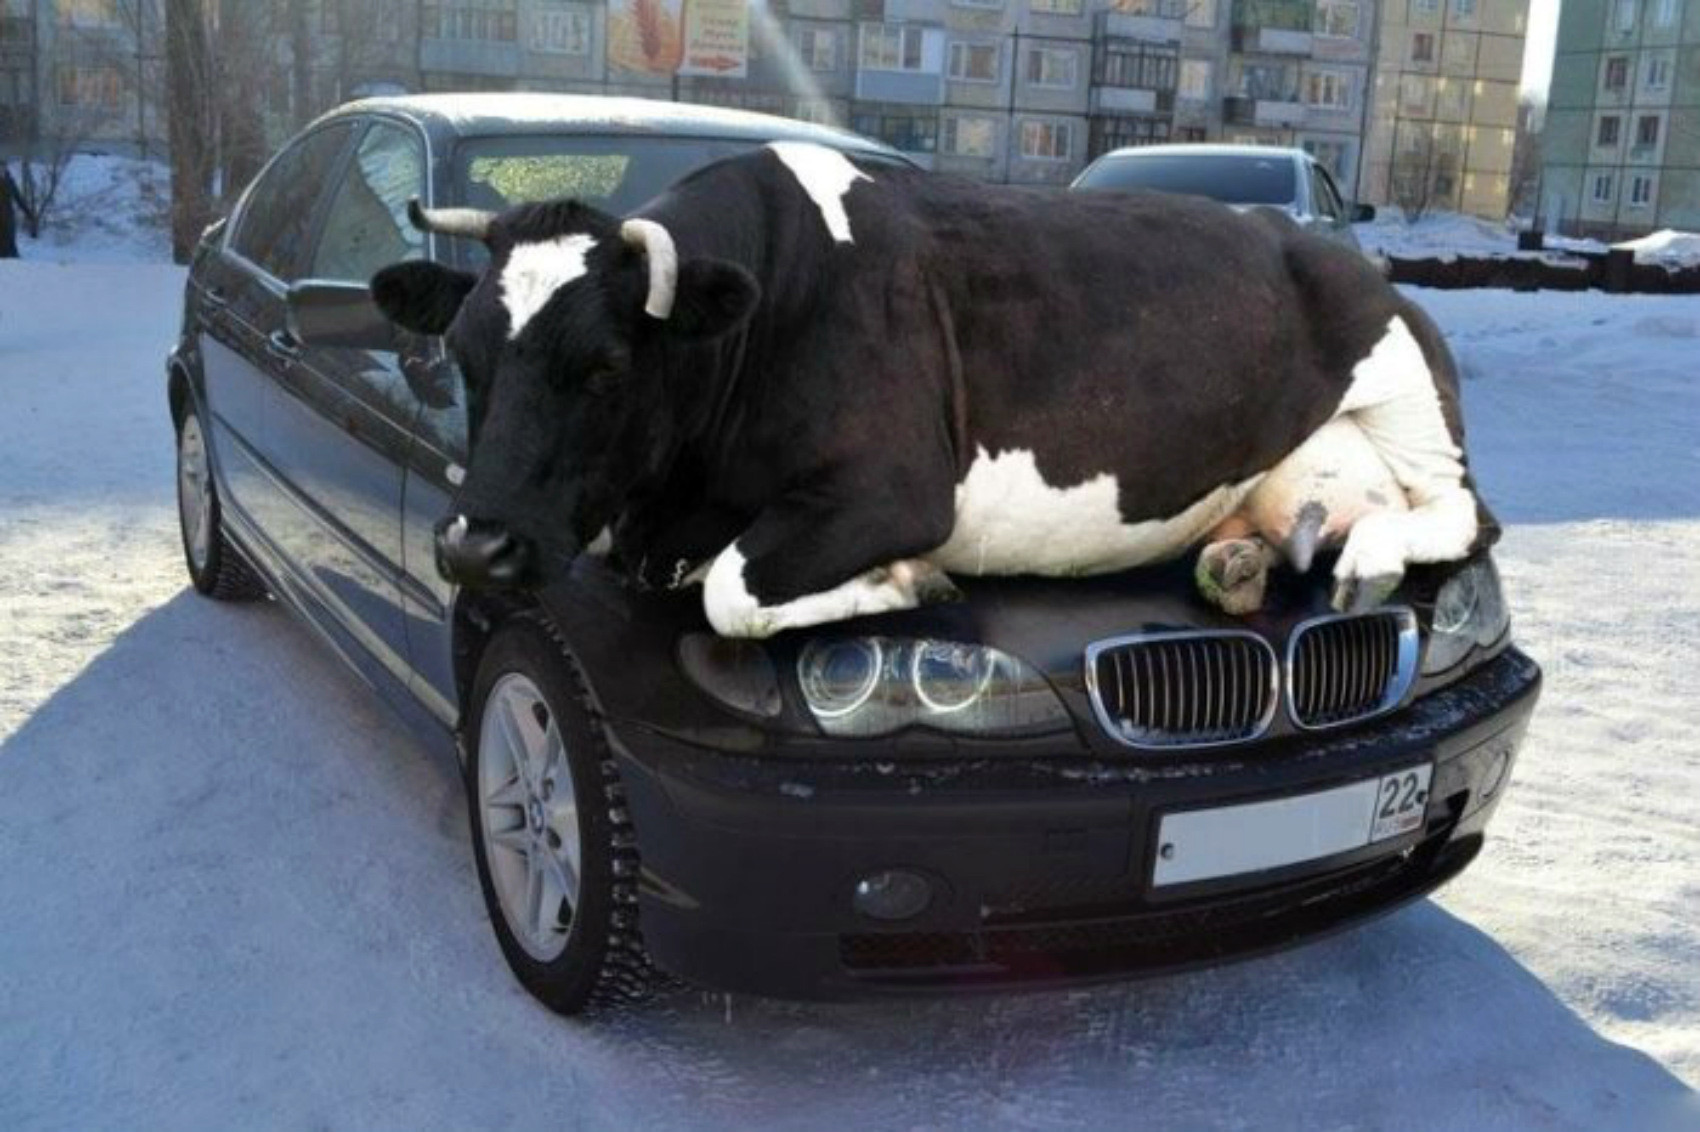 bull-sitting-on-car-bonnet-funny-picture